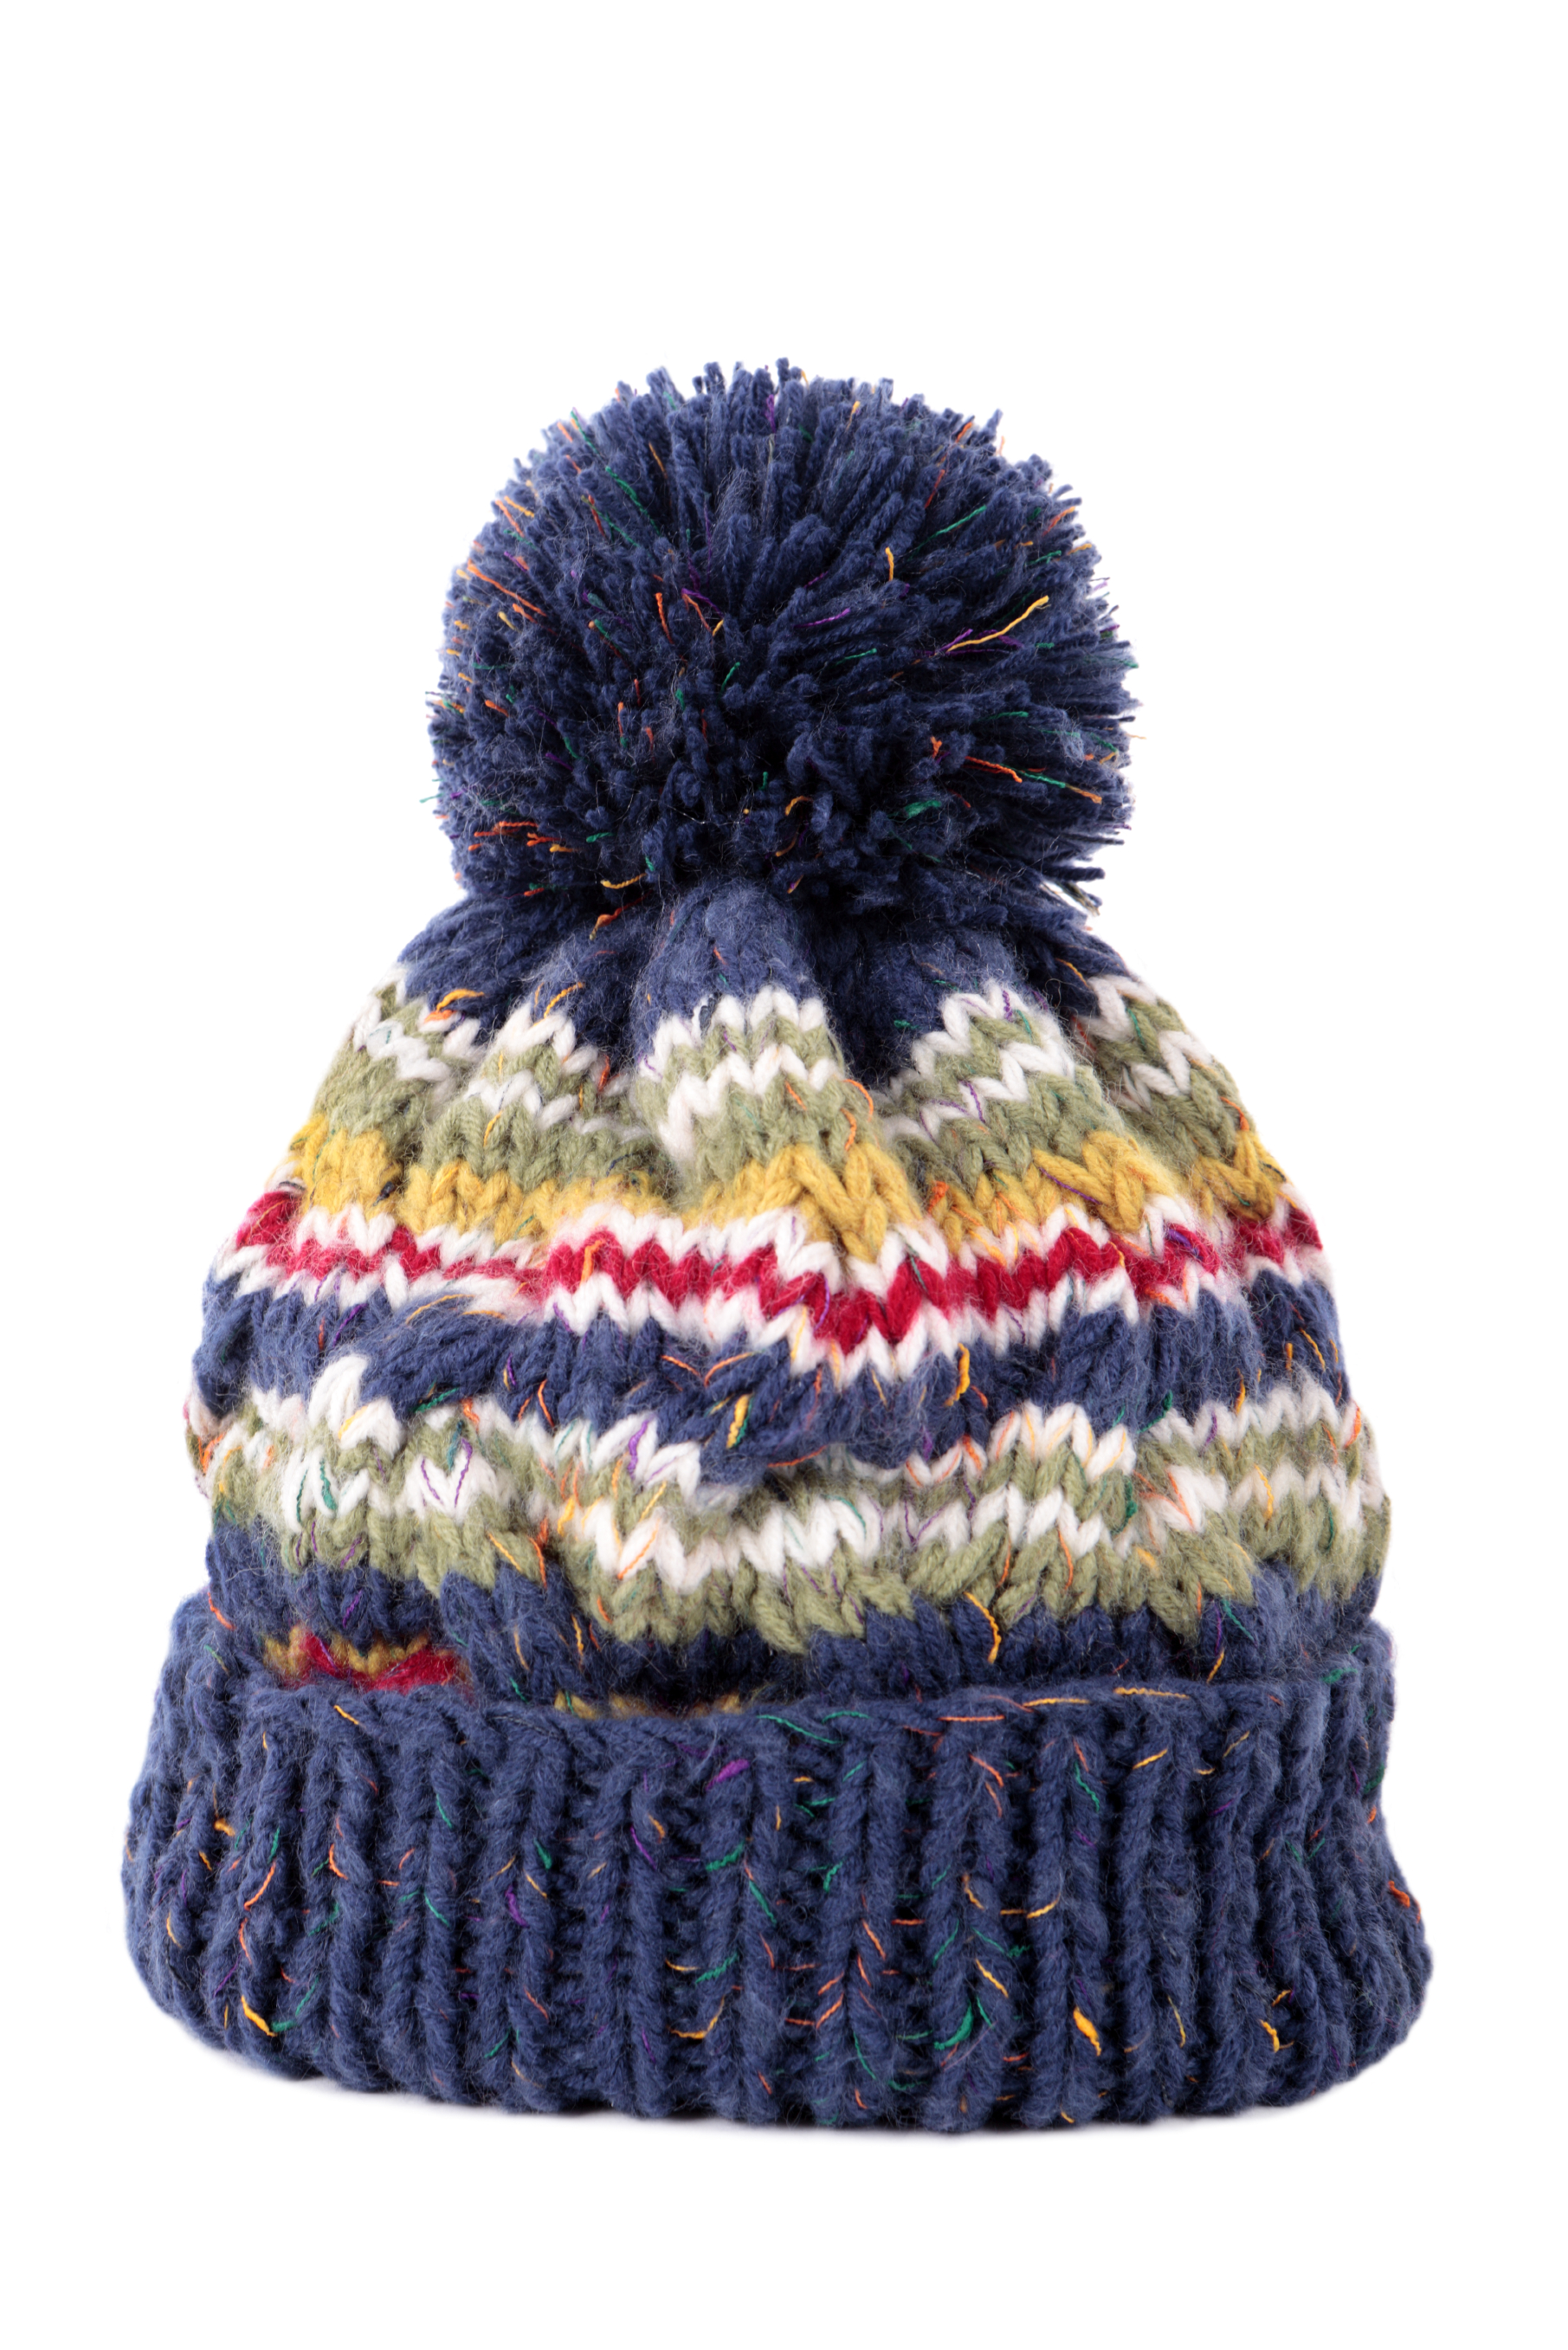 Knitting Pattern Wooly Hat : Hat s a great idea! - Candis